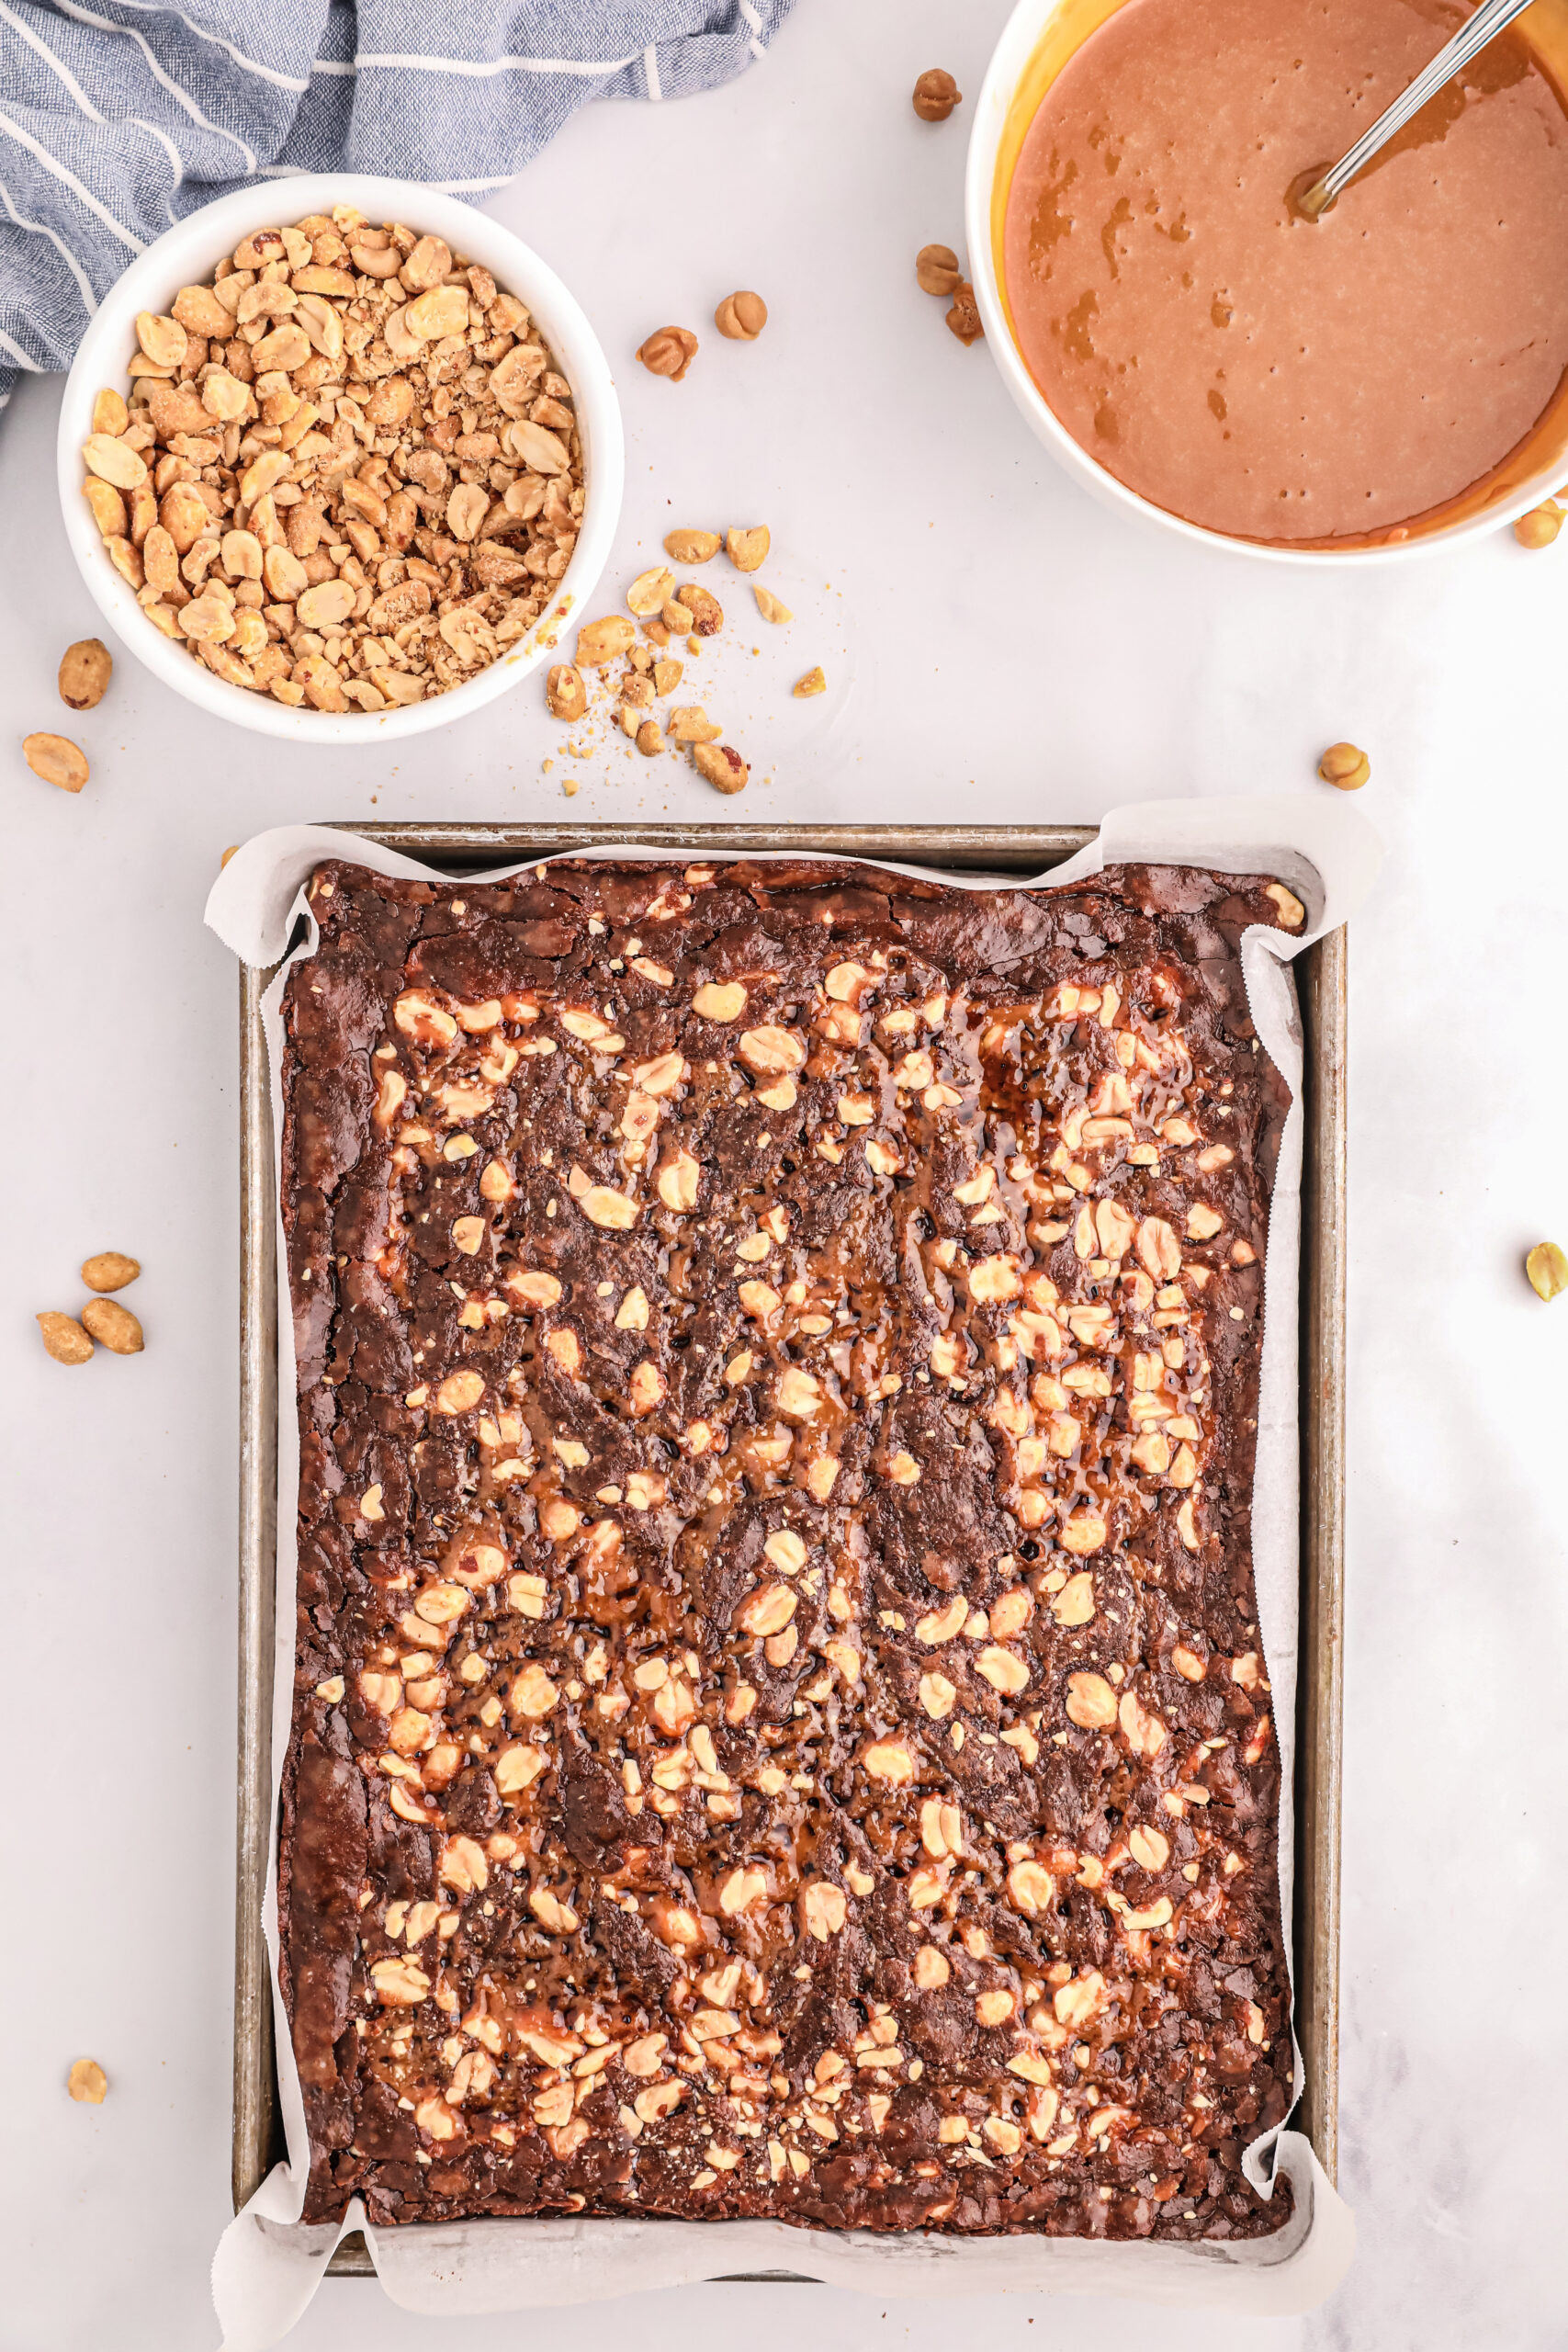 freshly baked snickers brownies on a baking sheet